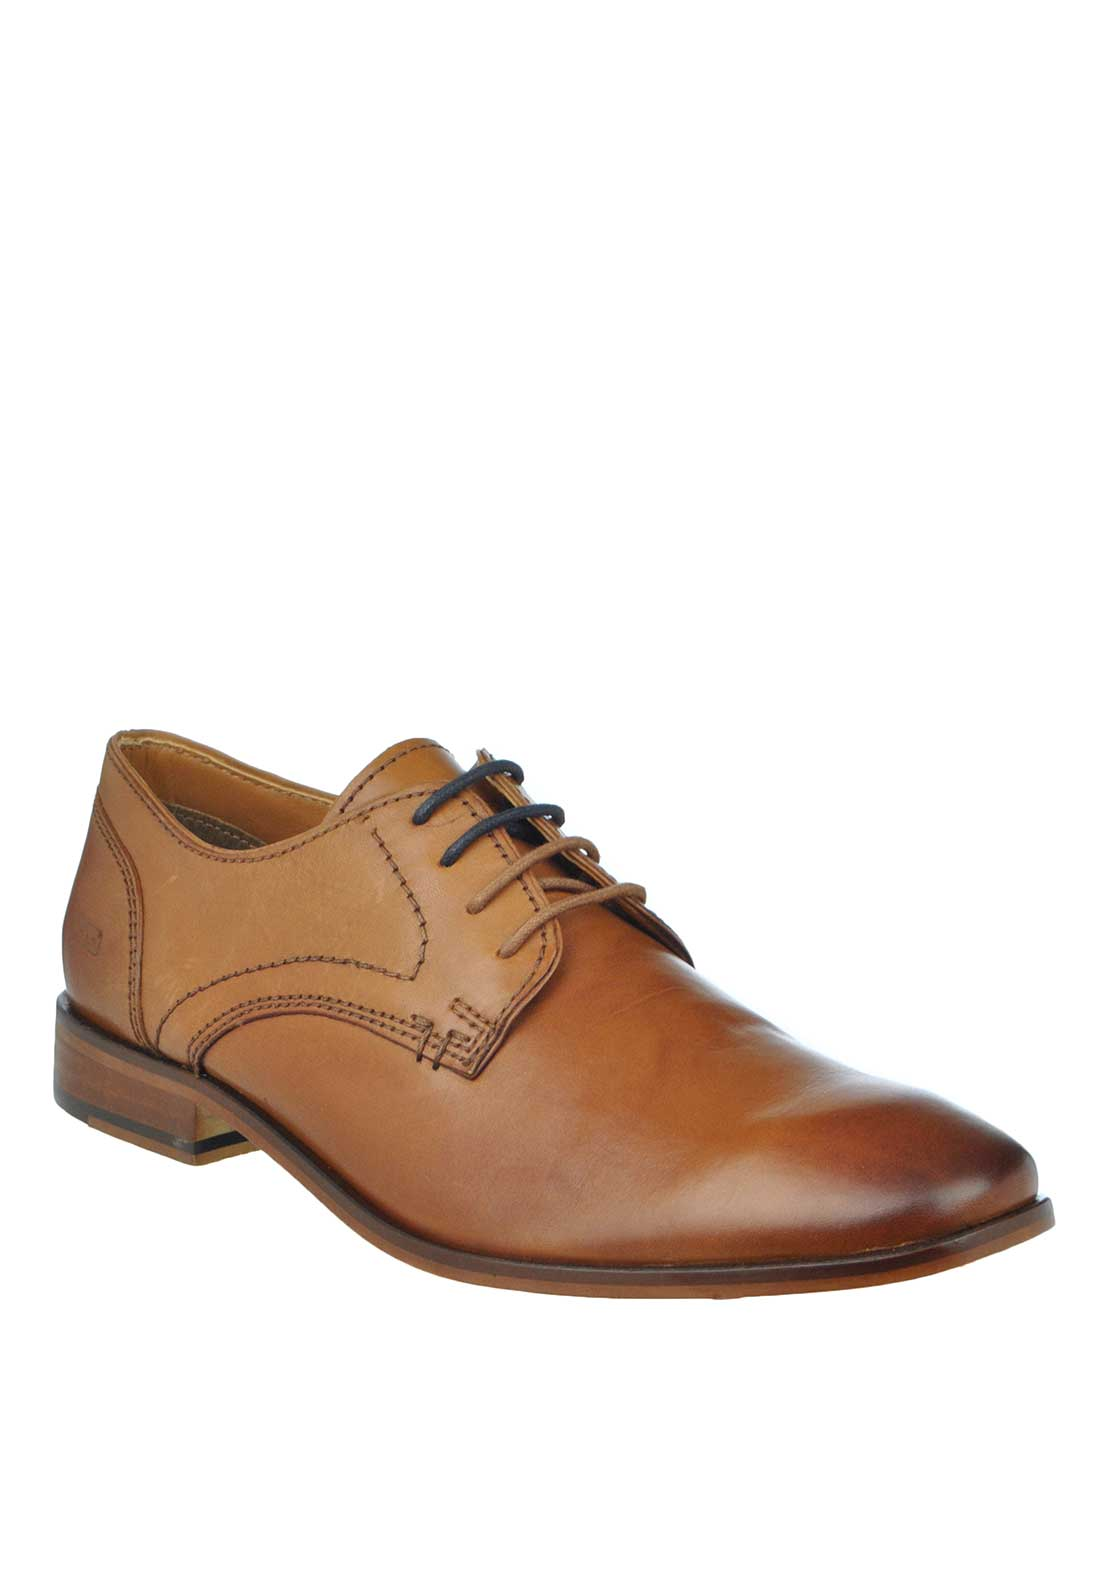 Paul O'Donnell by POD Boston Leather Lace Up Formal Shoes, Tan